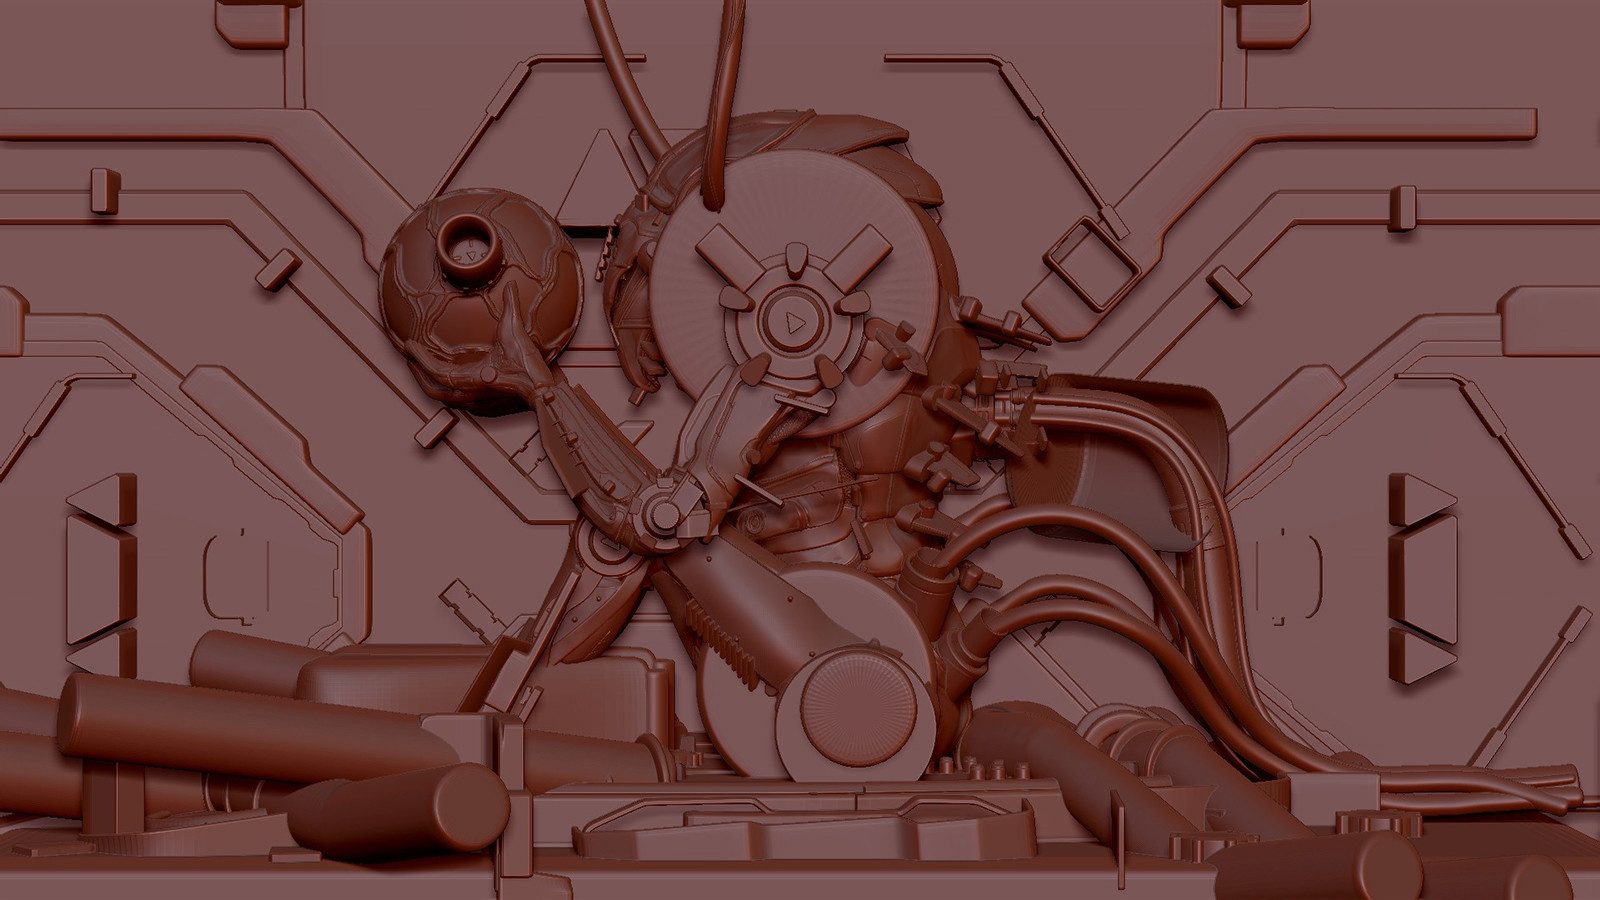 Chozo Metroid Zbrush Booleans